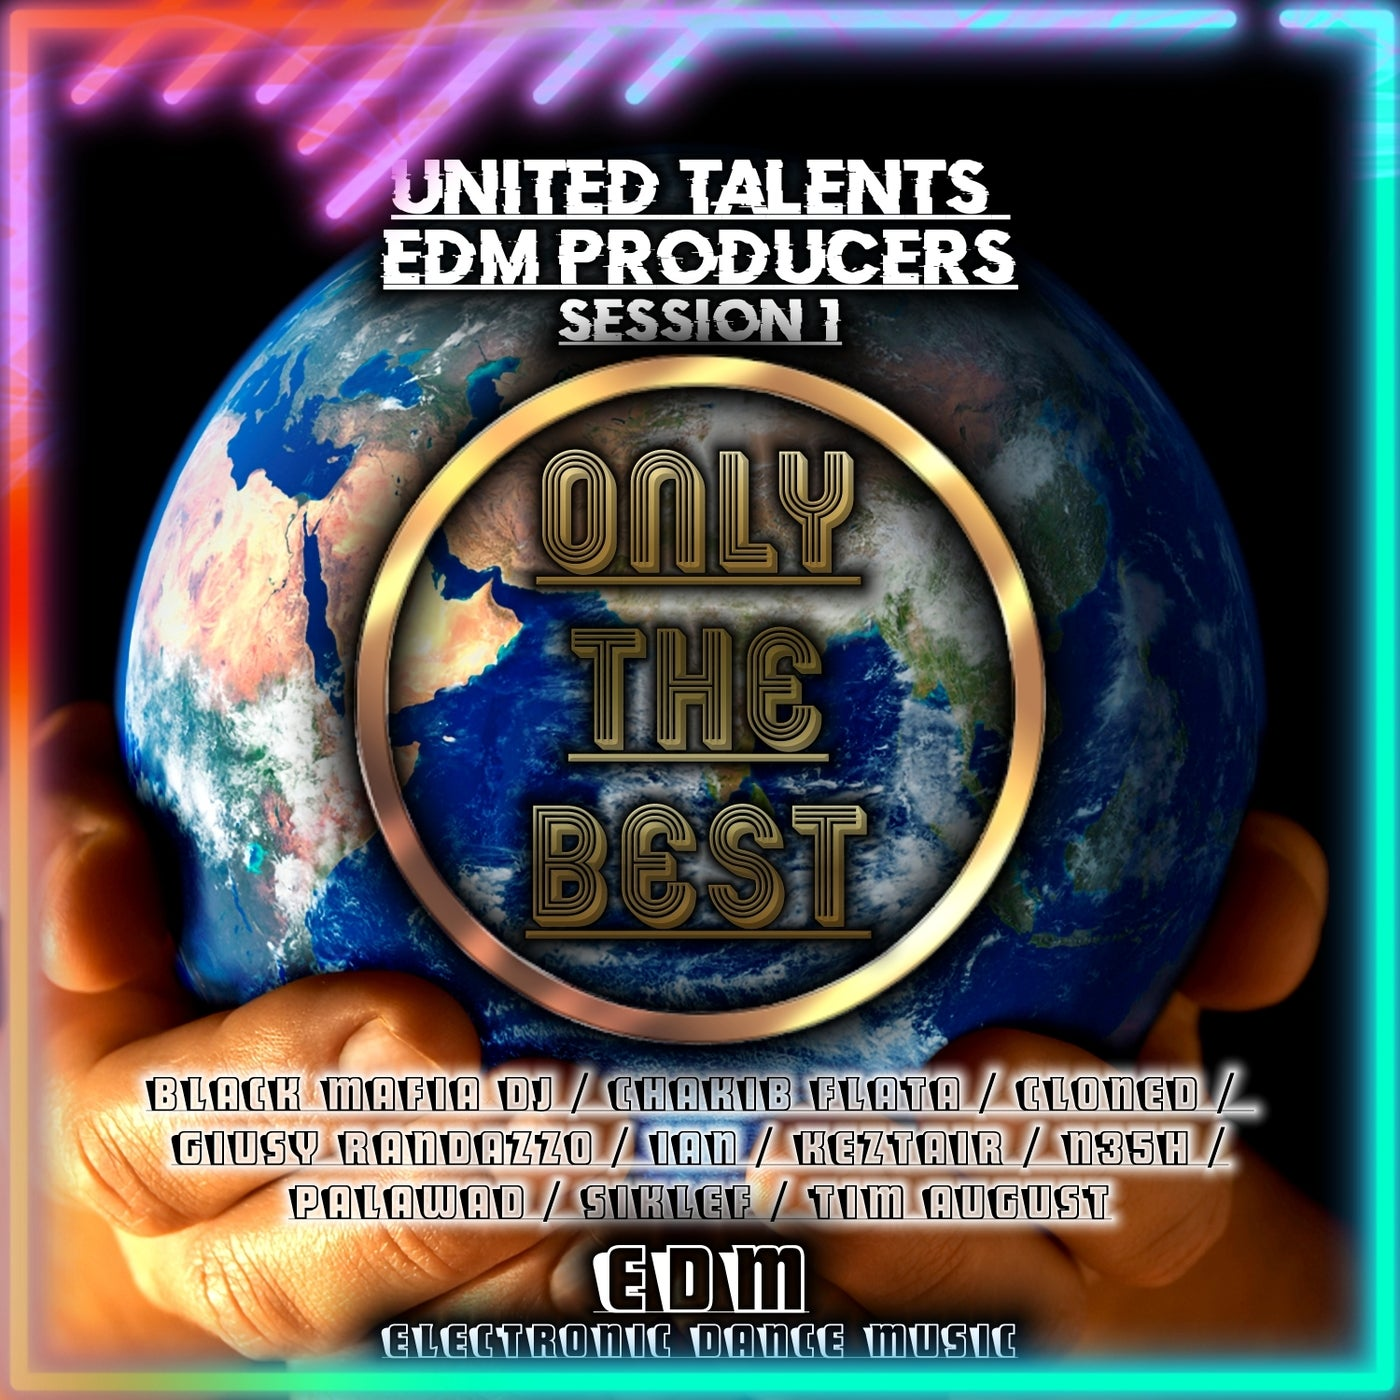 United Talents EDM Producers (Session 1)